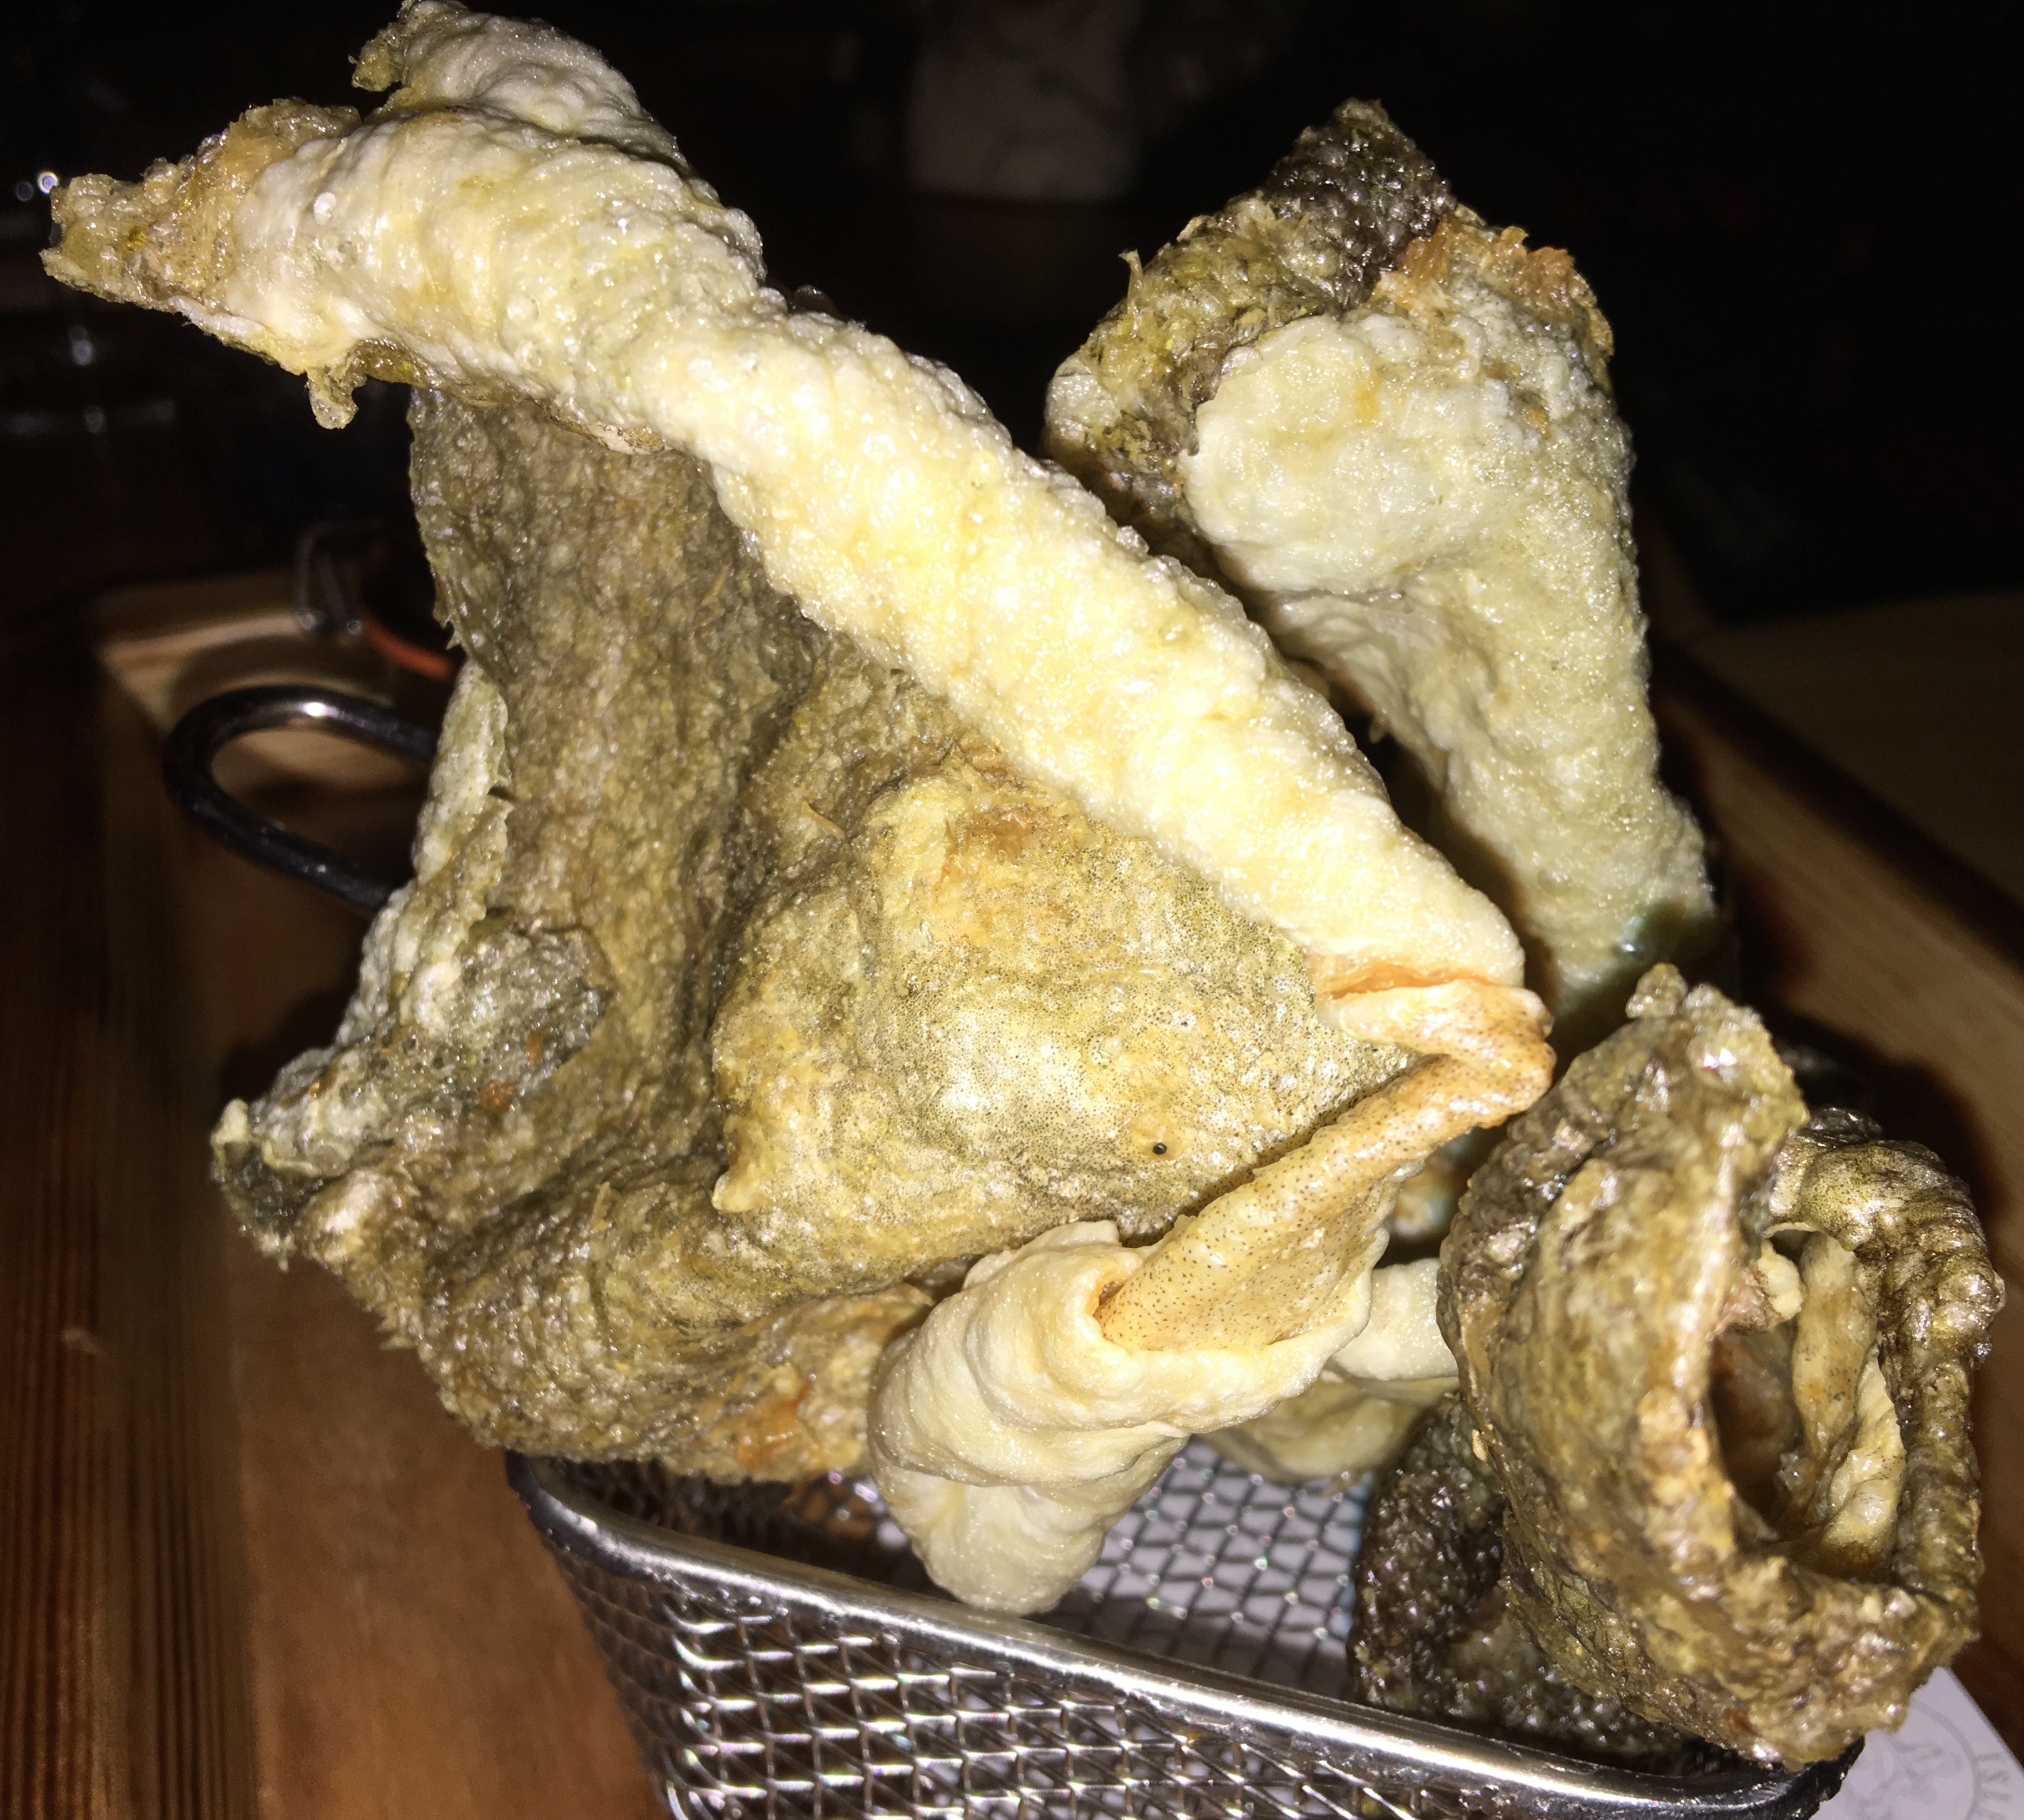 Icelandic whale cod burgers united nations of food nyc for Icelandic fish and chips nyc